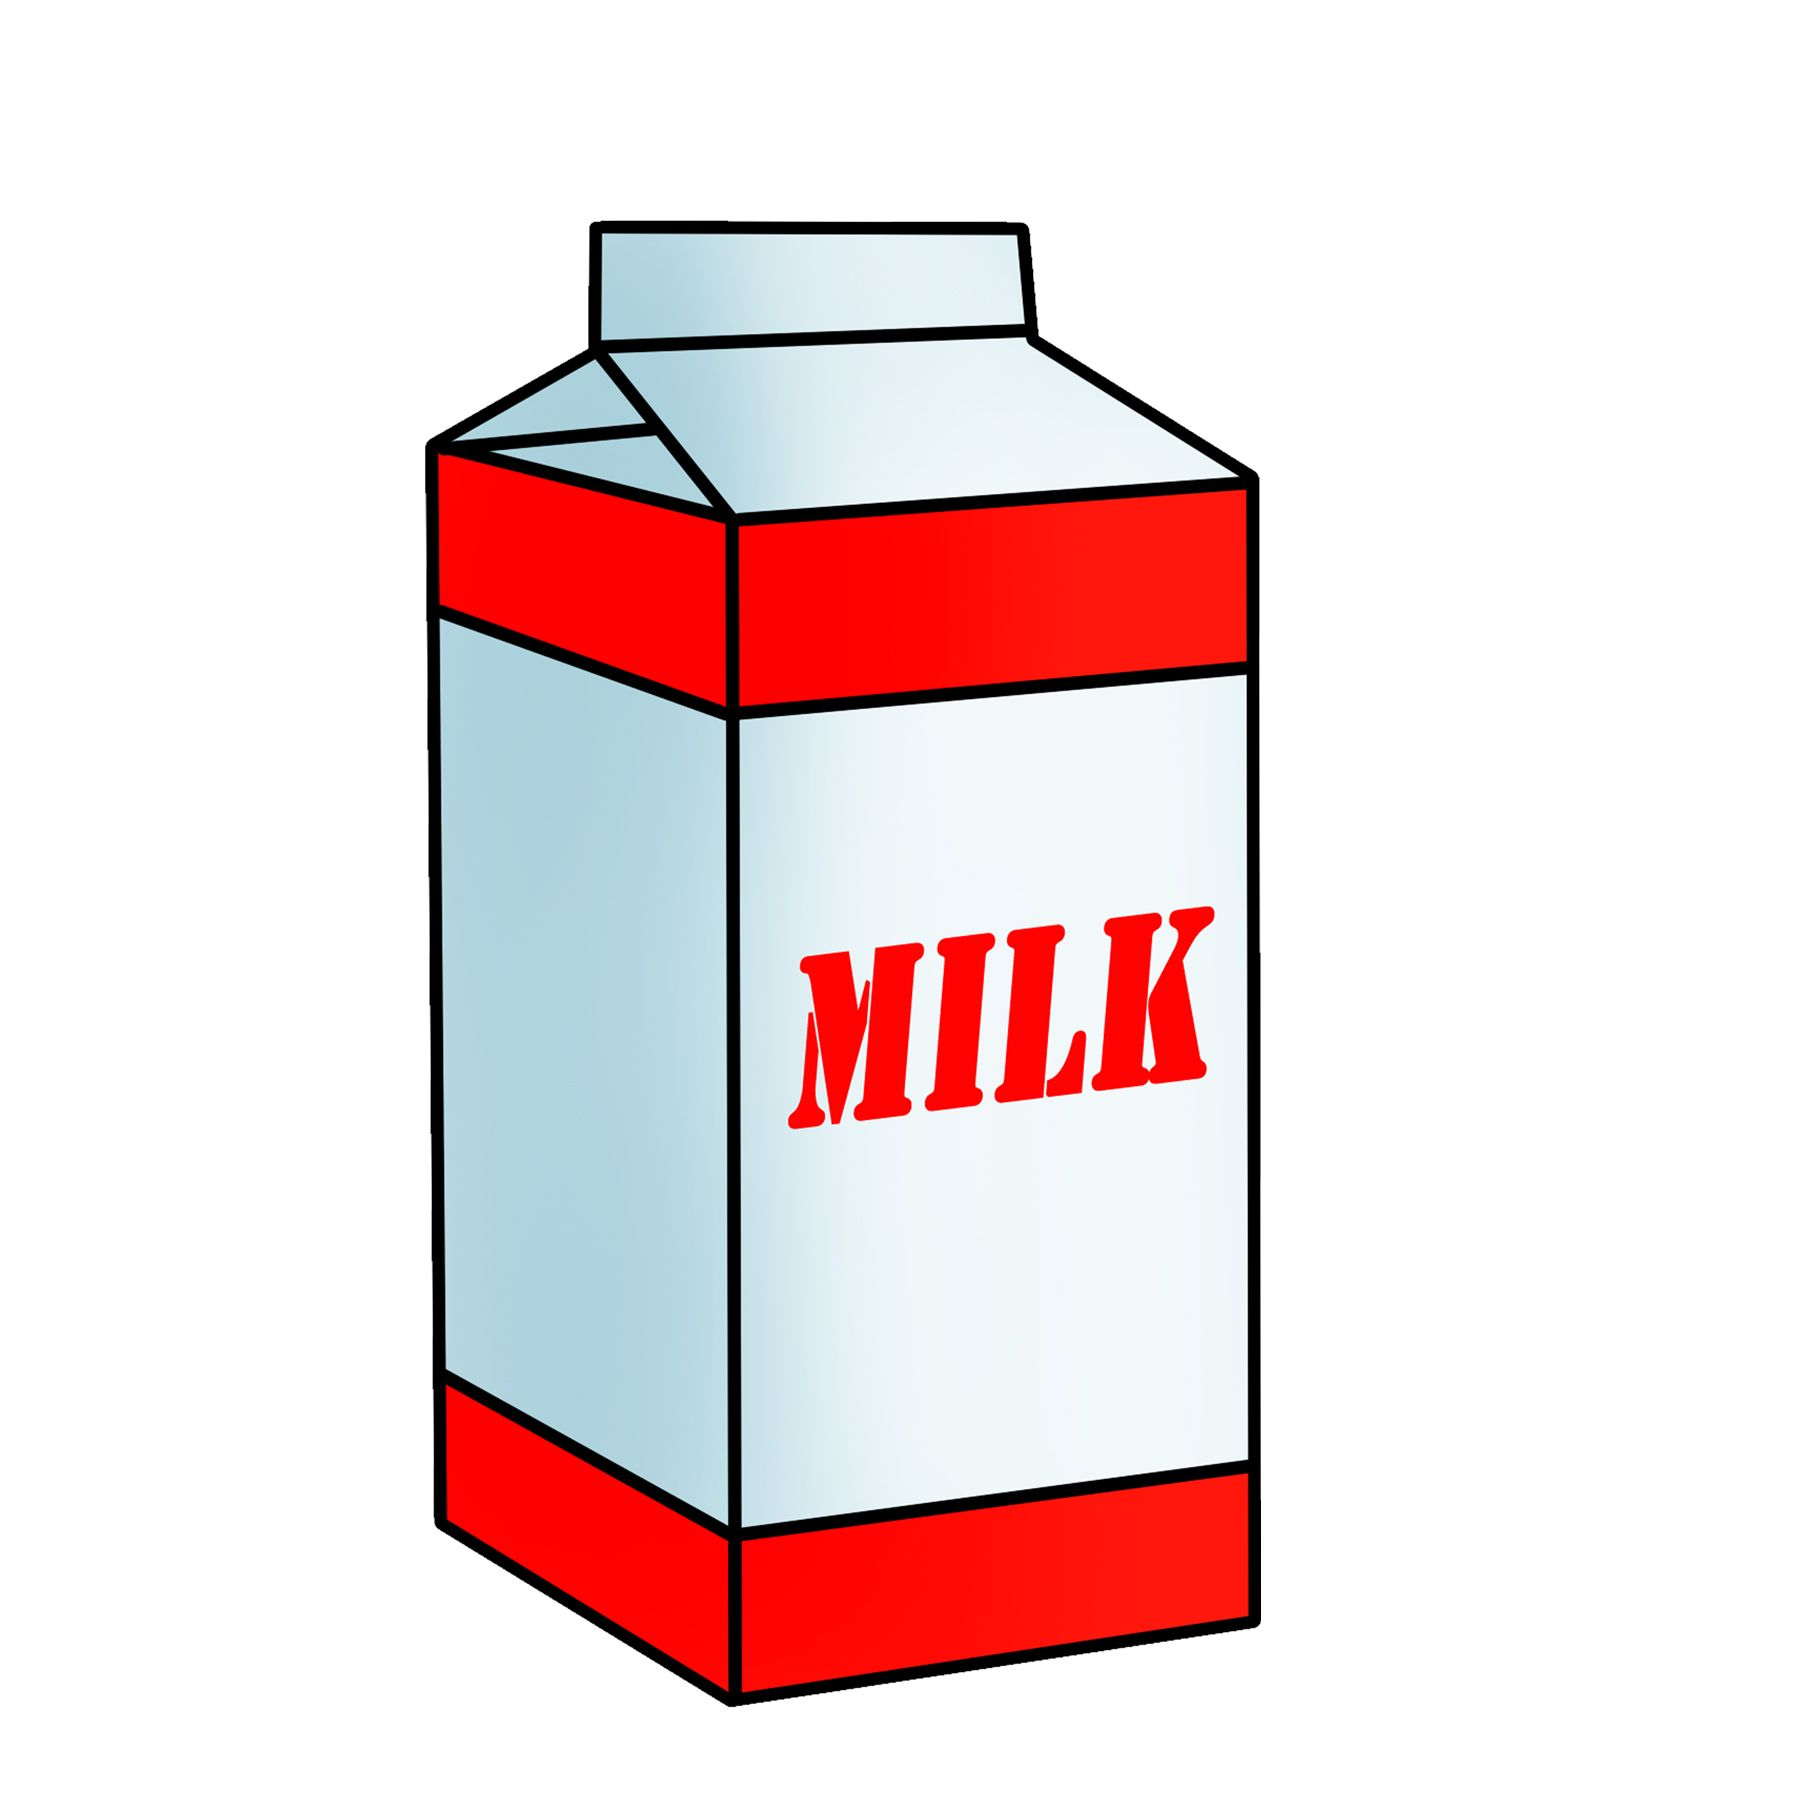 Milk clipart clip art. Pin by i on